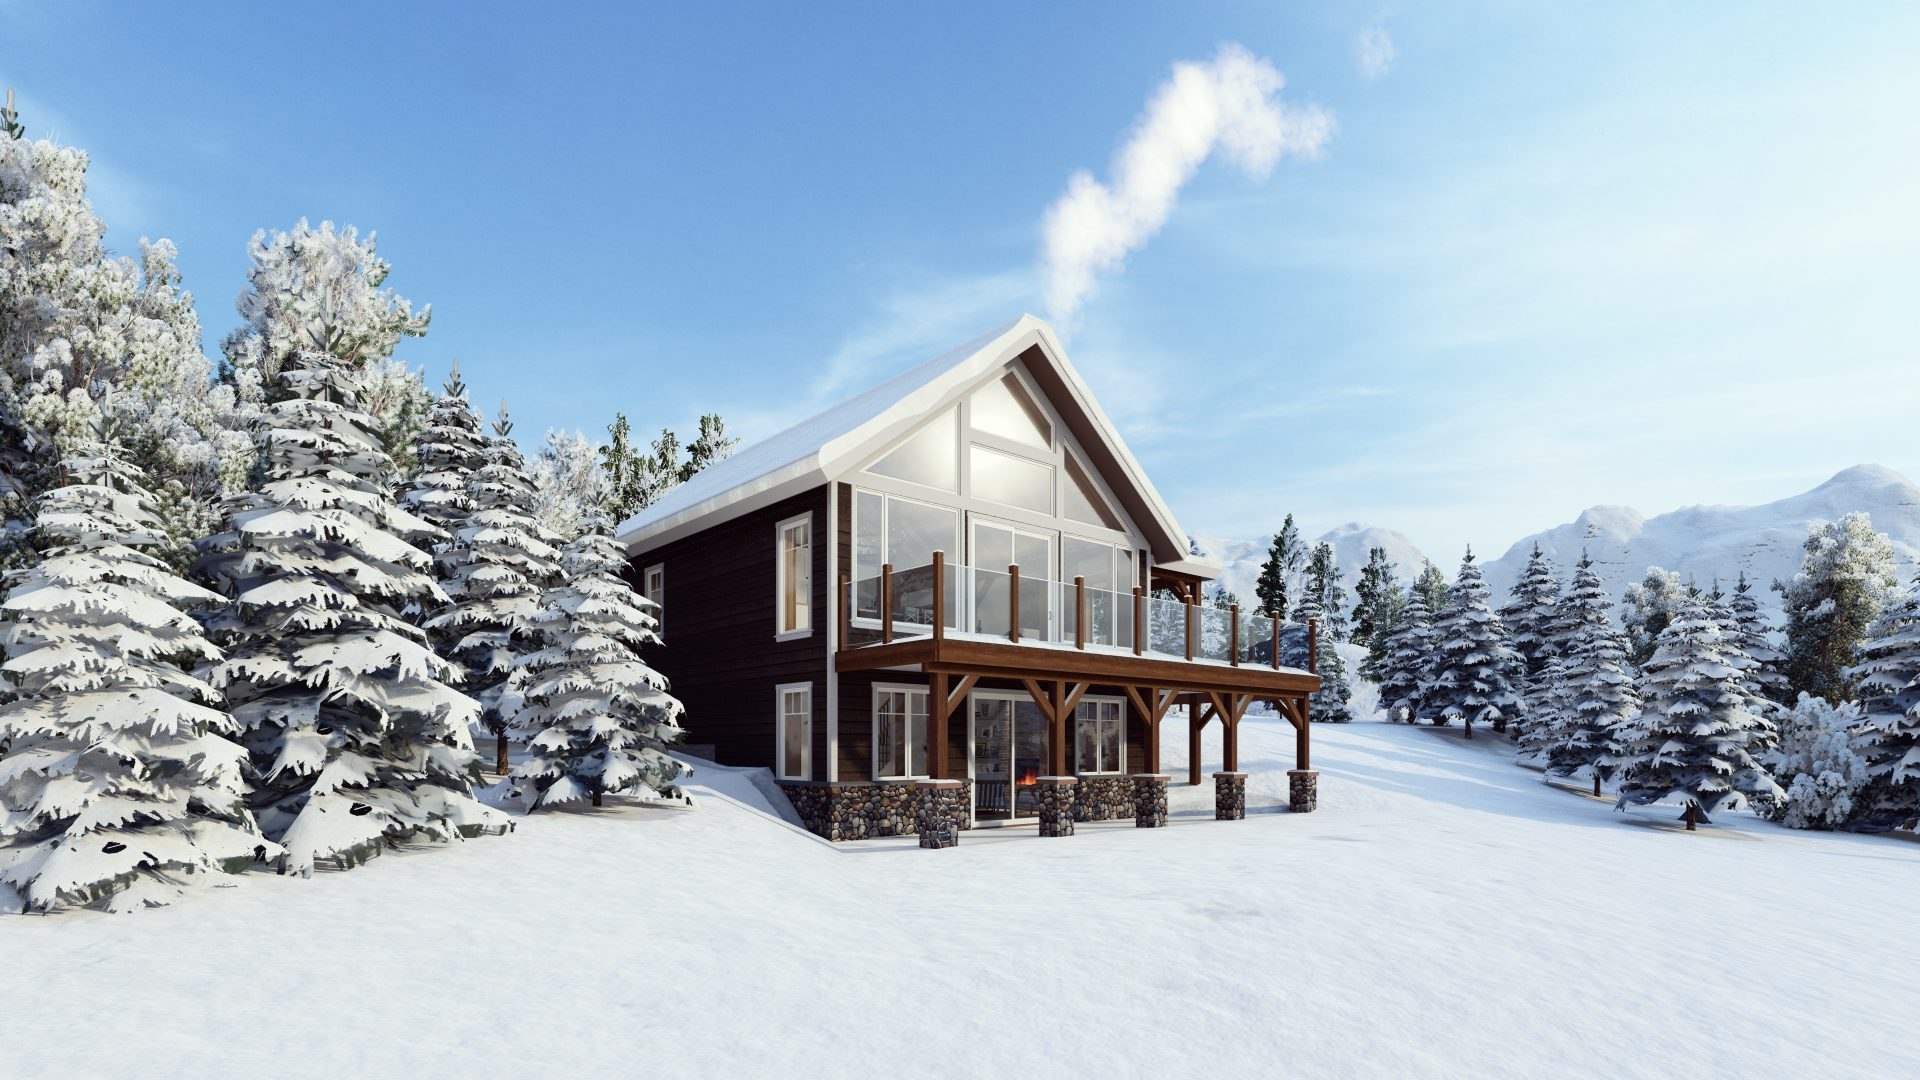 Timber Frame Open Concept House Plans   The Rouge   Normerica   Exterior, Side, Winter